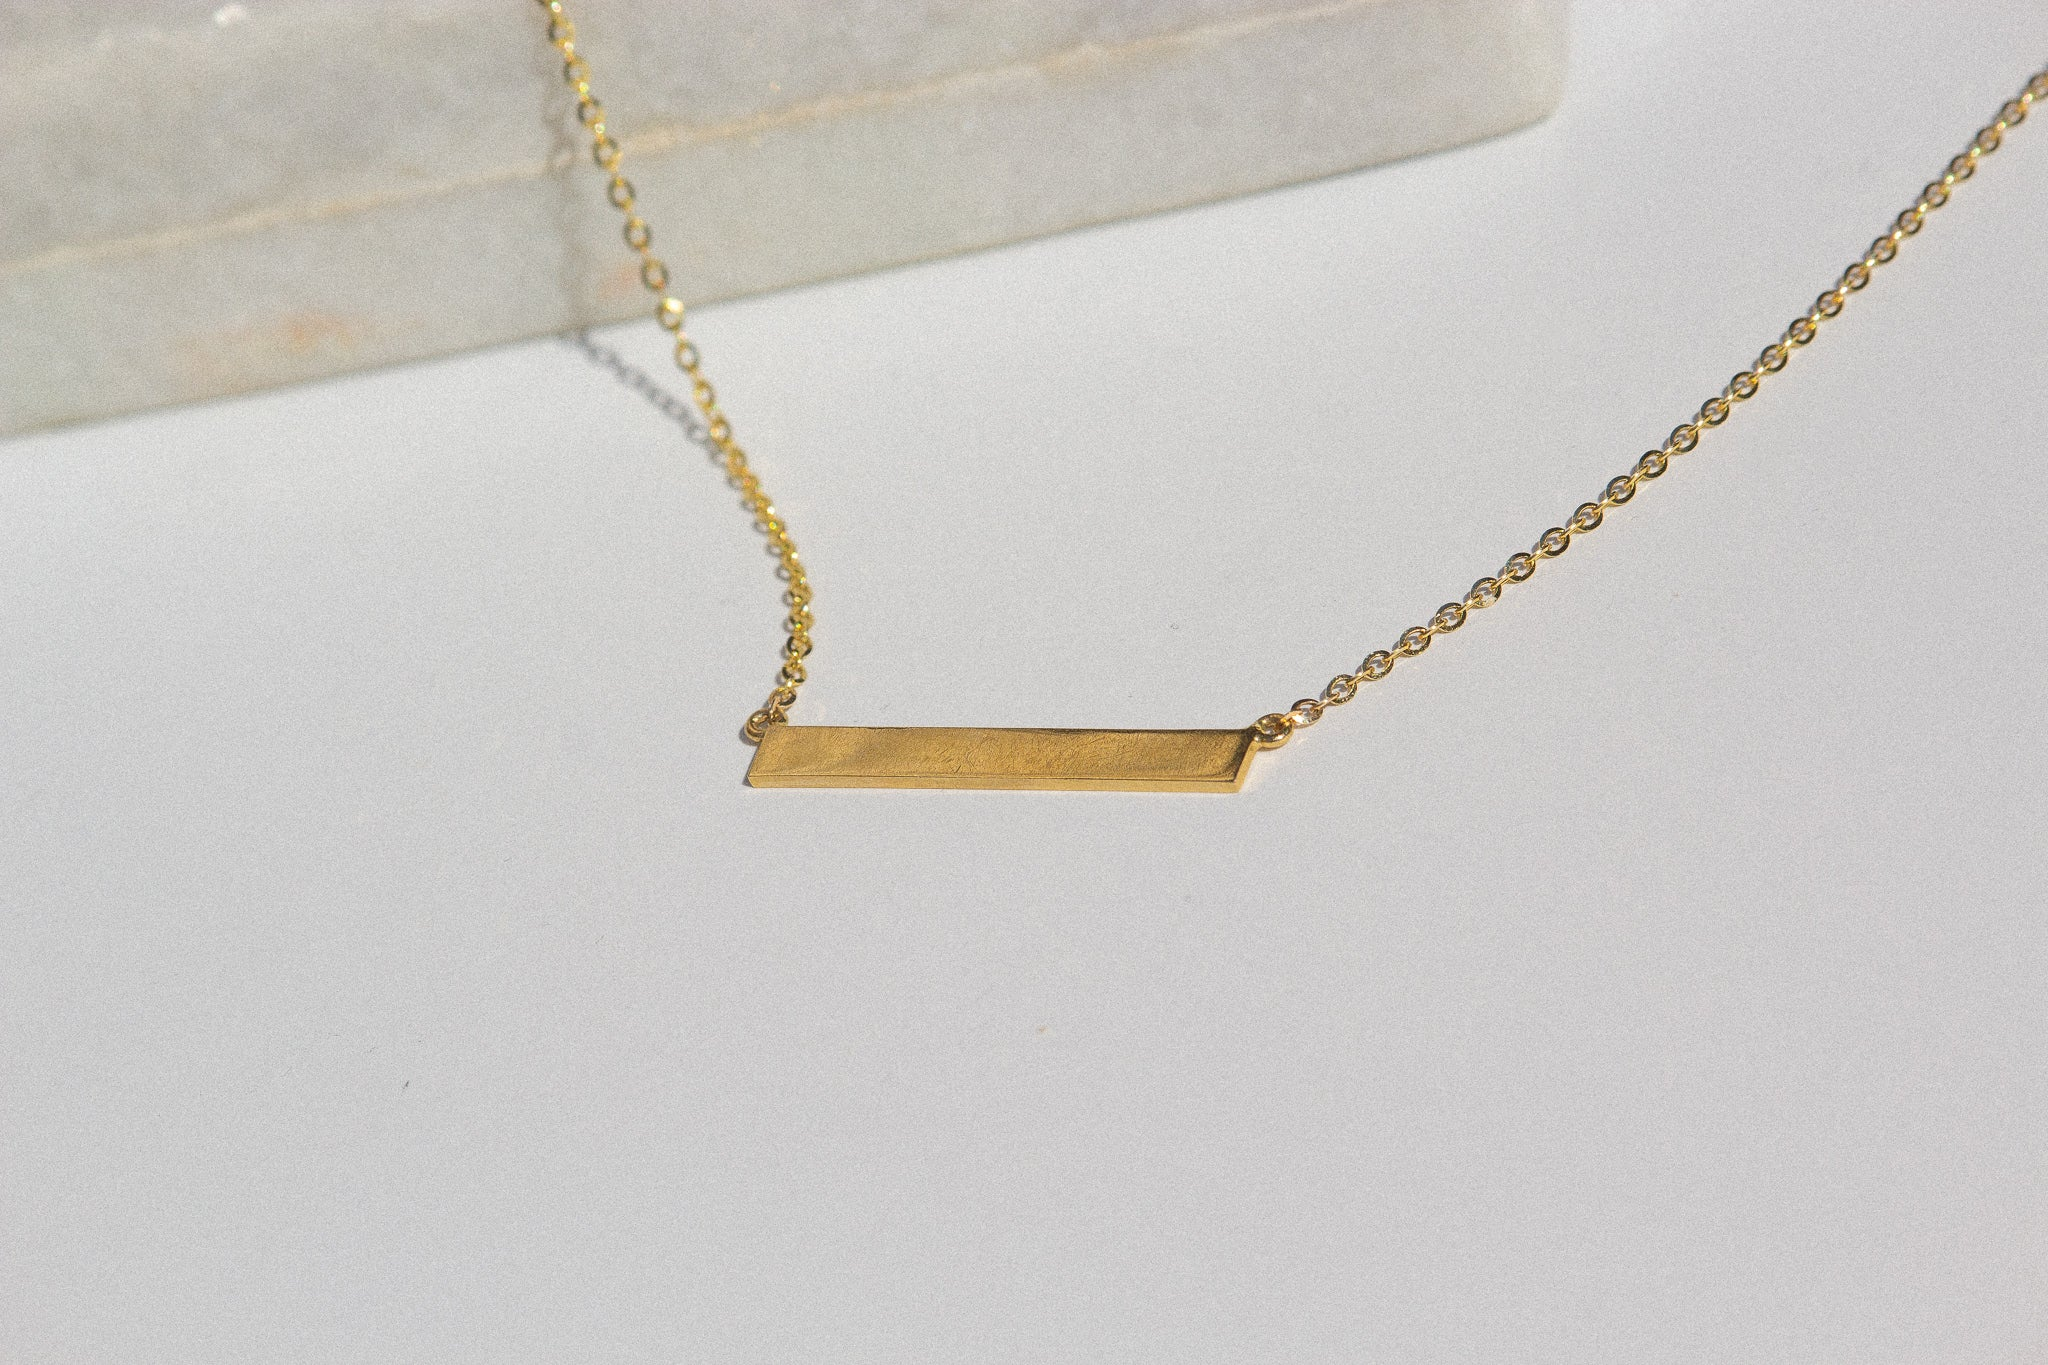 Custom engraved bar name necklace mejuri, engraved bar necklace gold mejuri, buy engraved bar necklace toronto, toronto bar necklace cheap, affordable gold engraved bar necklace toronto